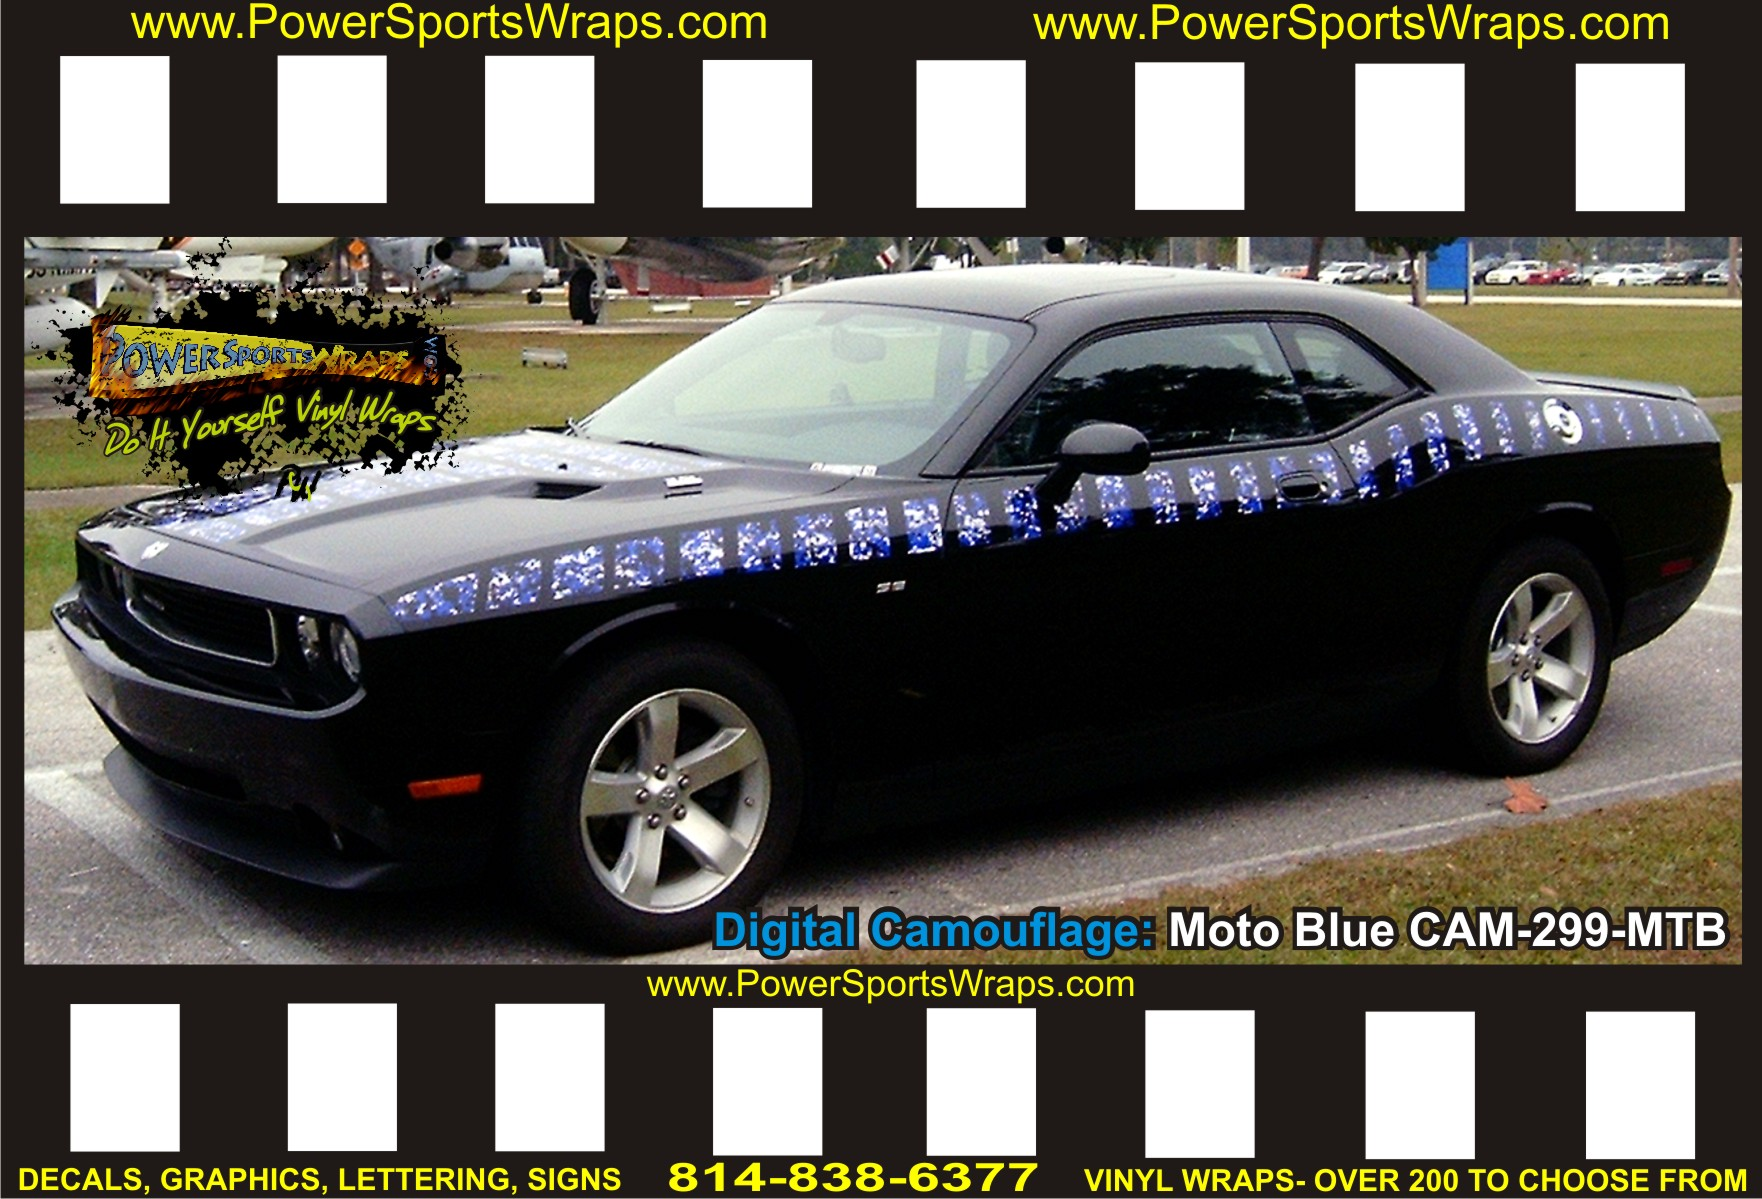 2010 Dodge Challenger Custom Digital Camo Graphics Moto